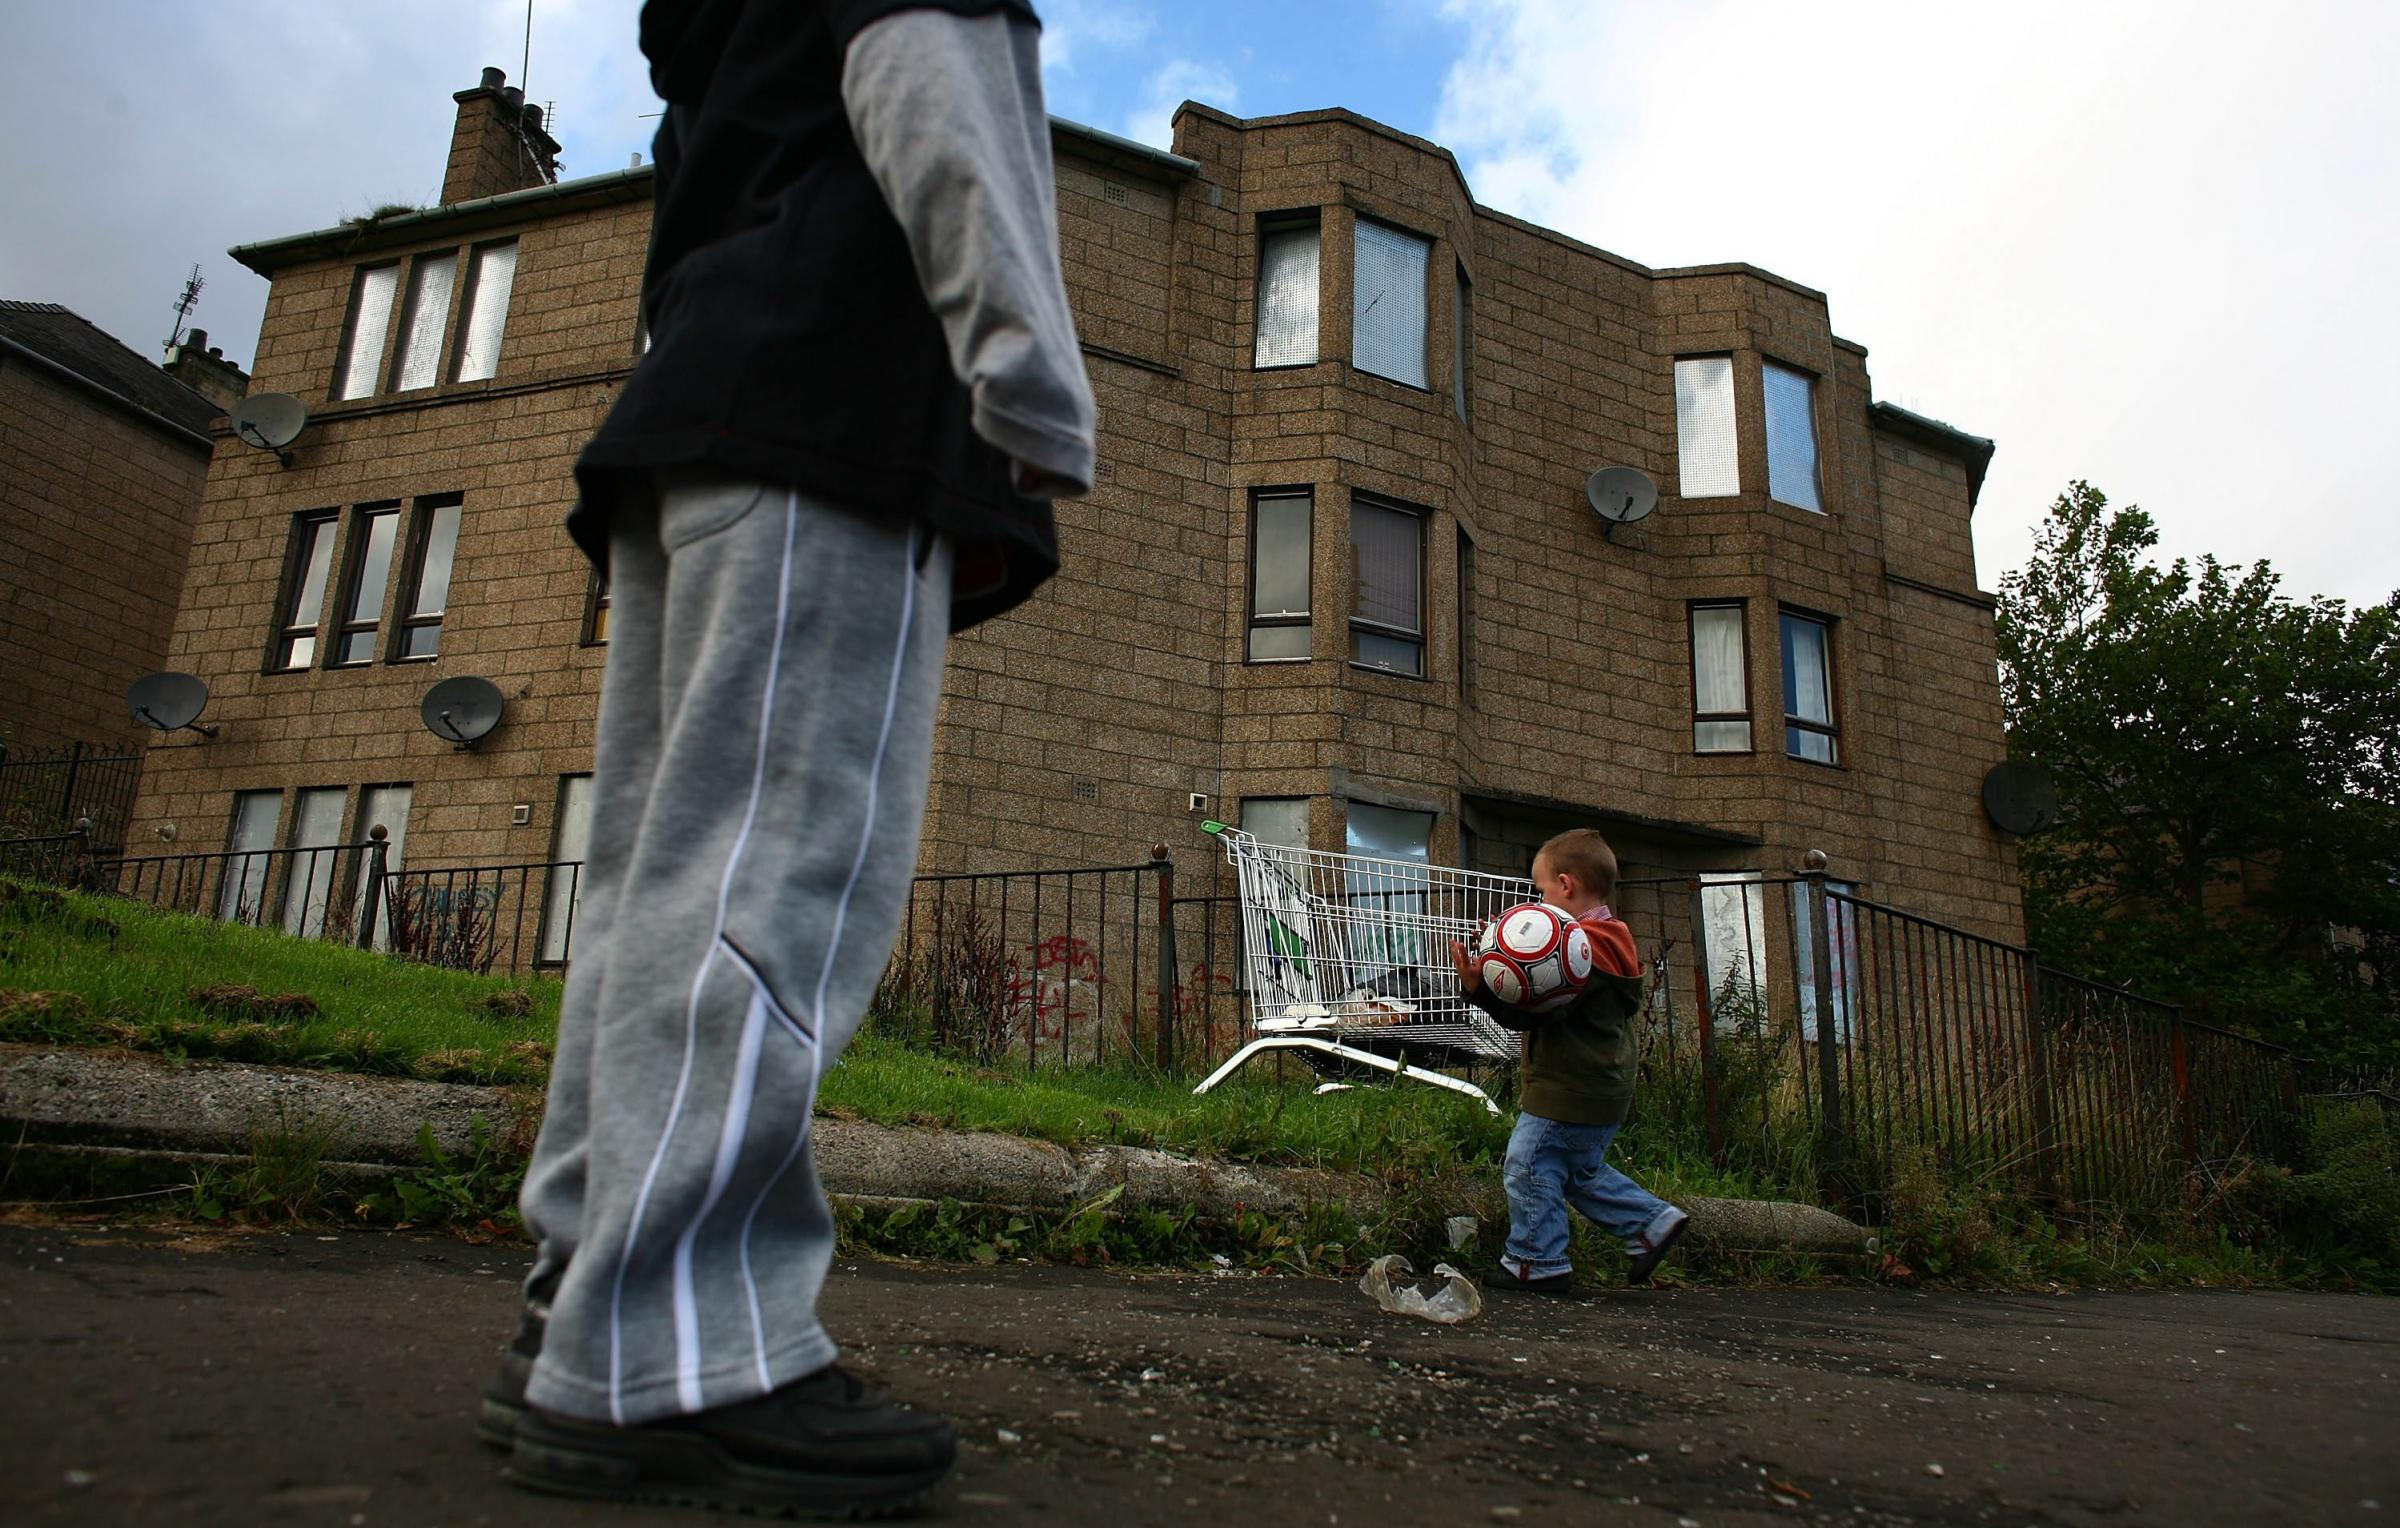 Campaigners want to change the public perception of poverty in Scotland